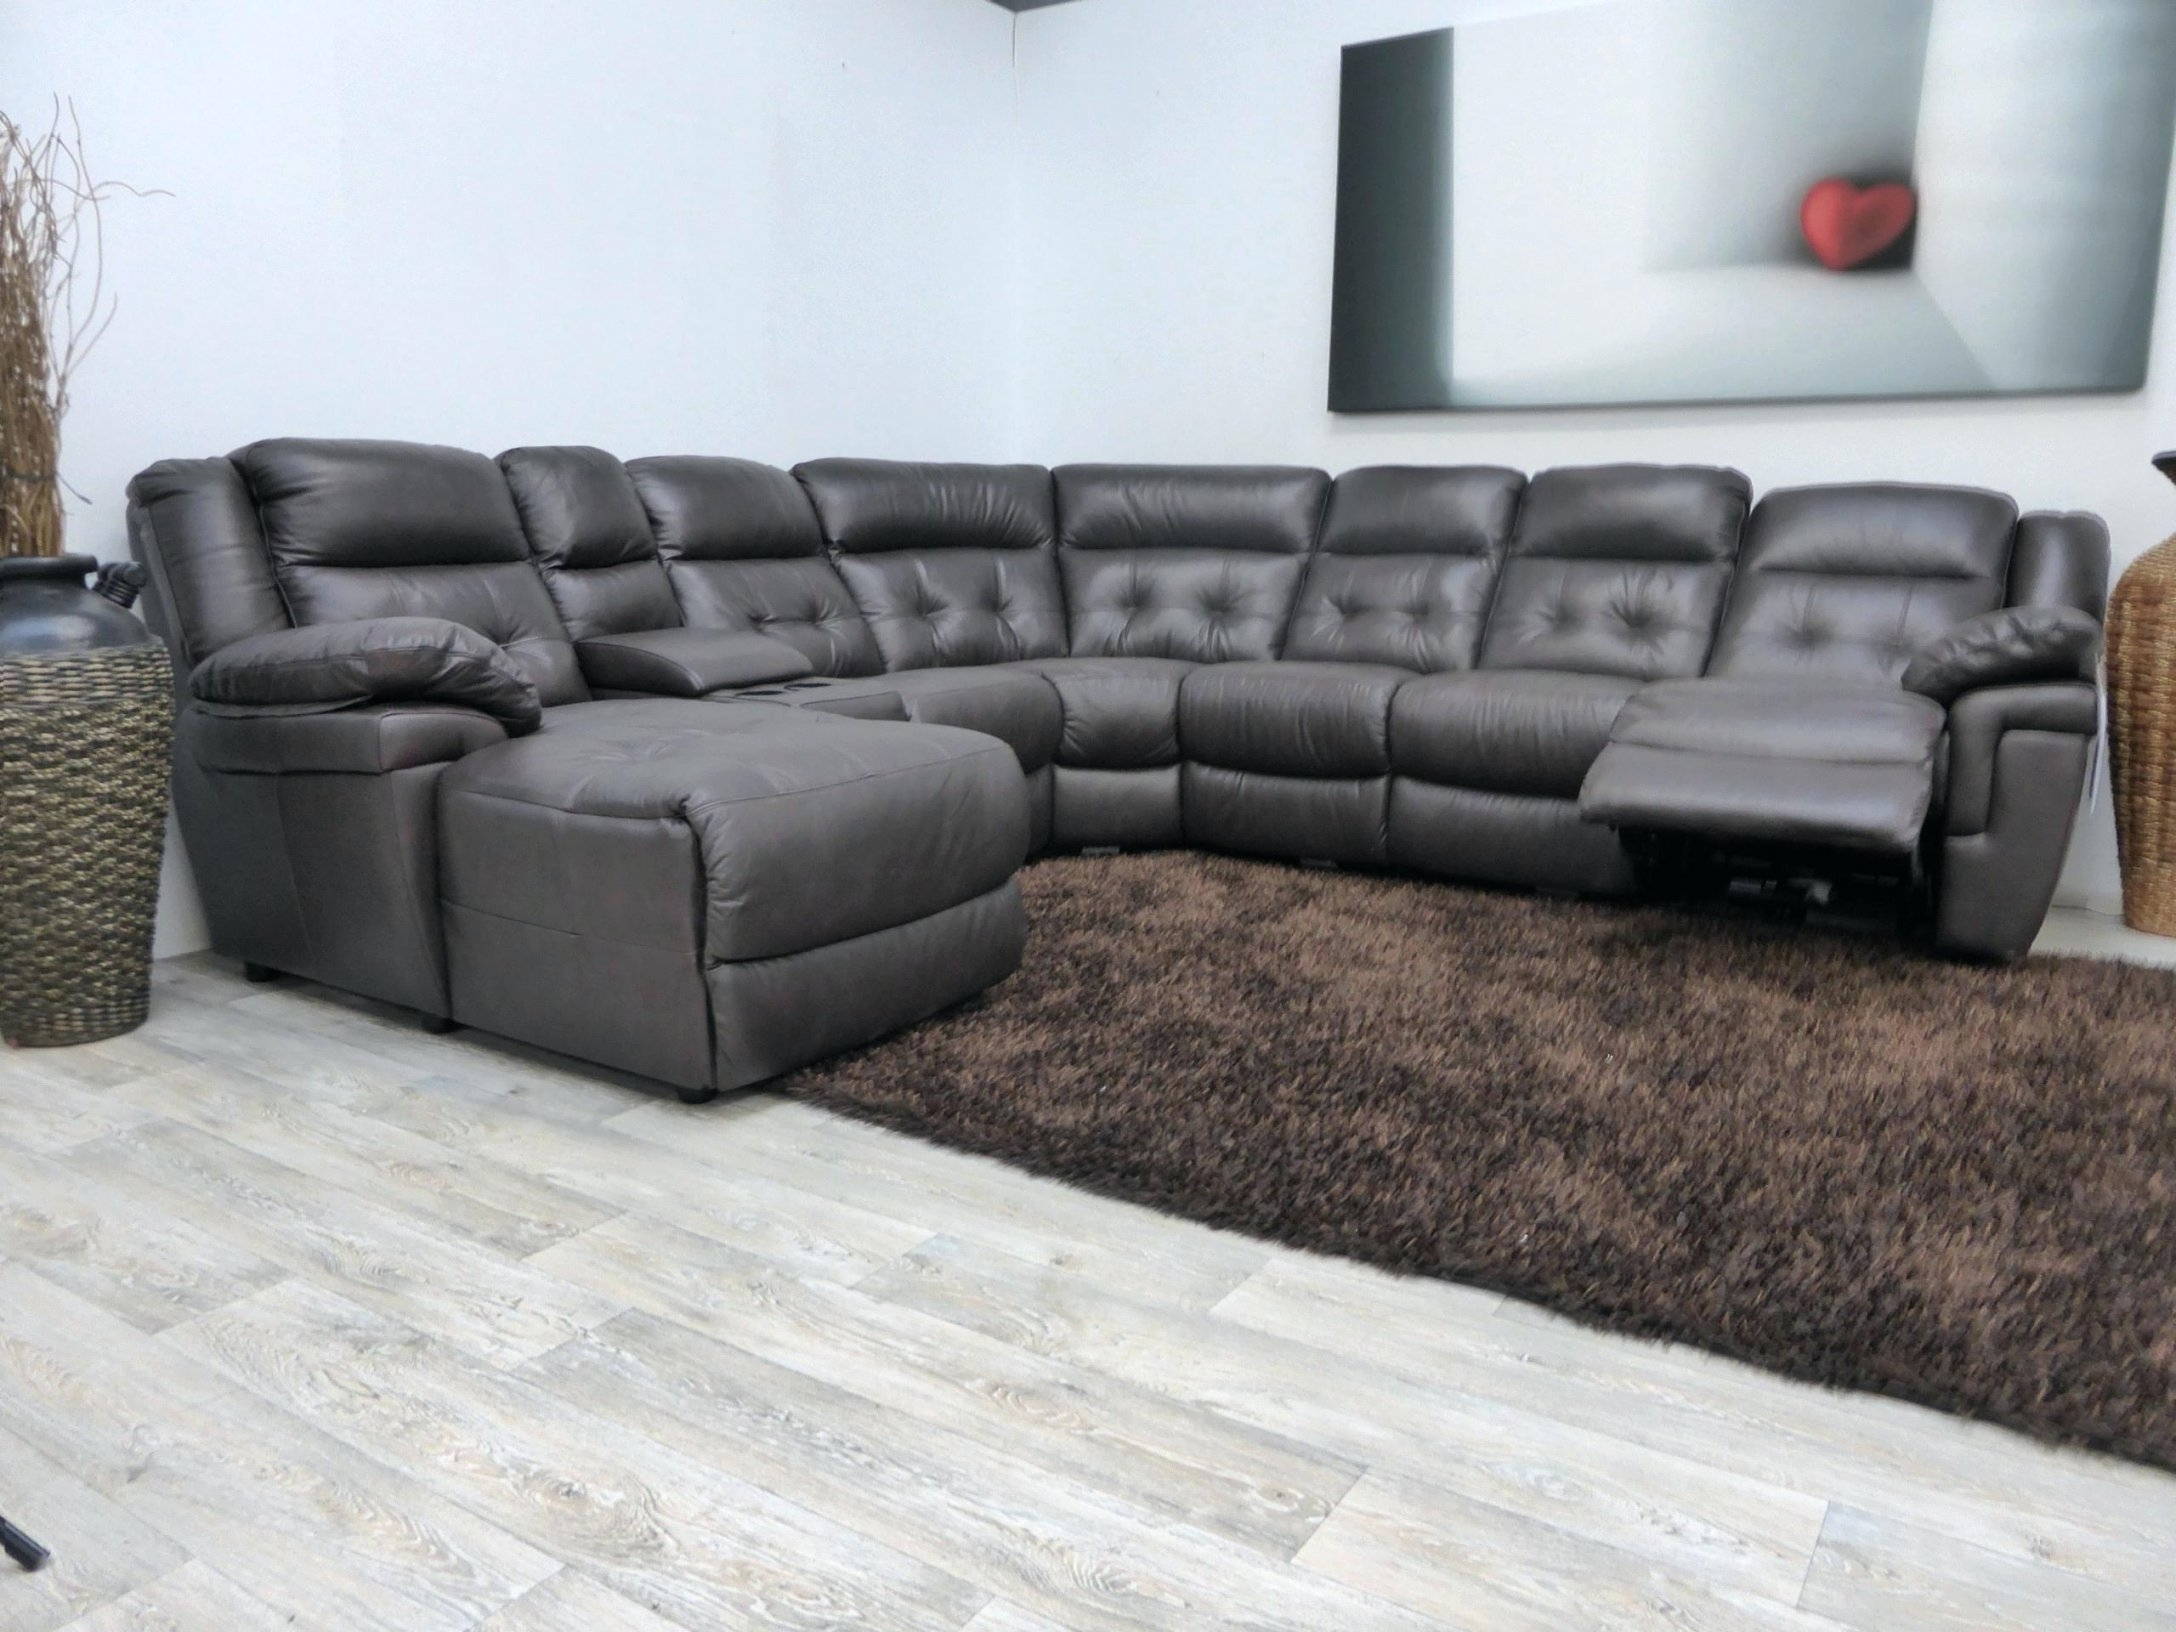 Widely Used Lazy Boy Chaise Lounges Inside 5 Piece Reclining Sectional Sofala Z Boy Lazy Chaise For Lazy Boy (View 10 of 15)